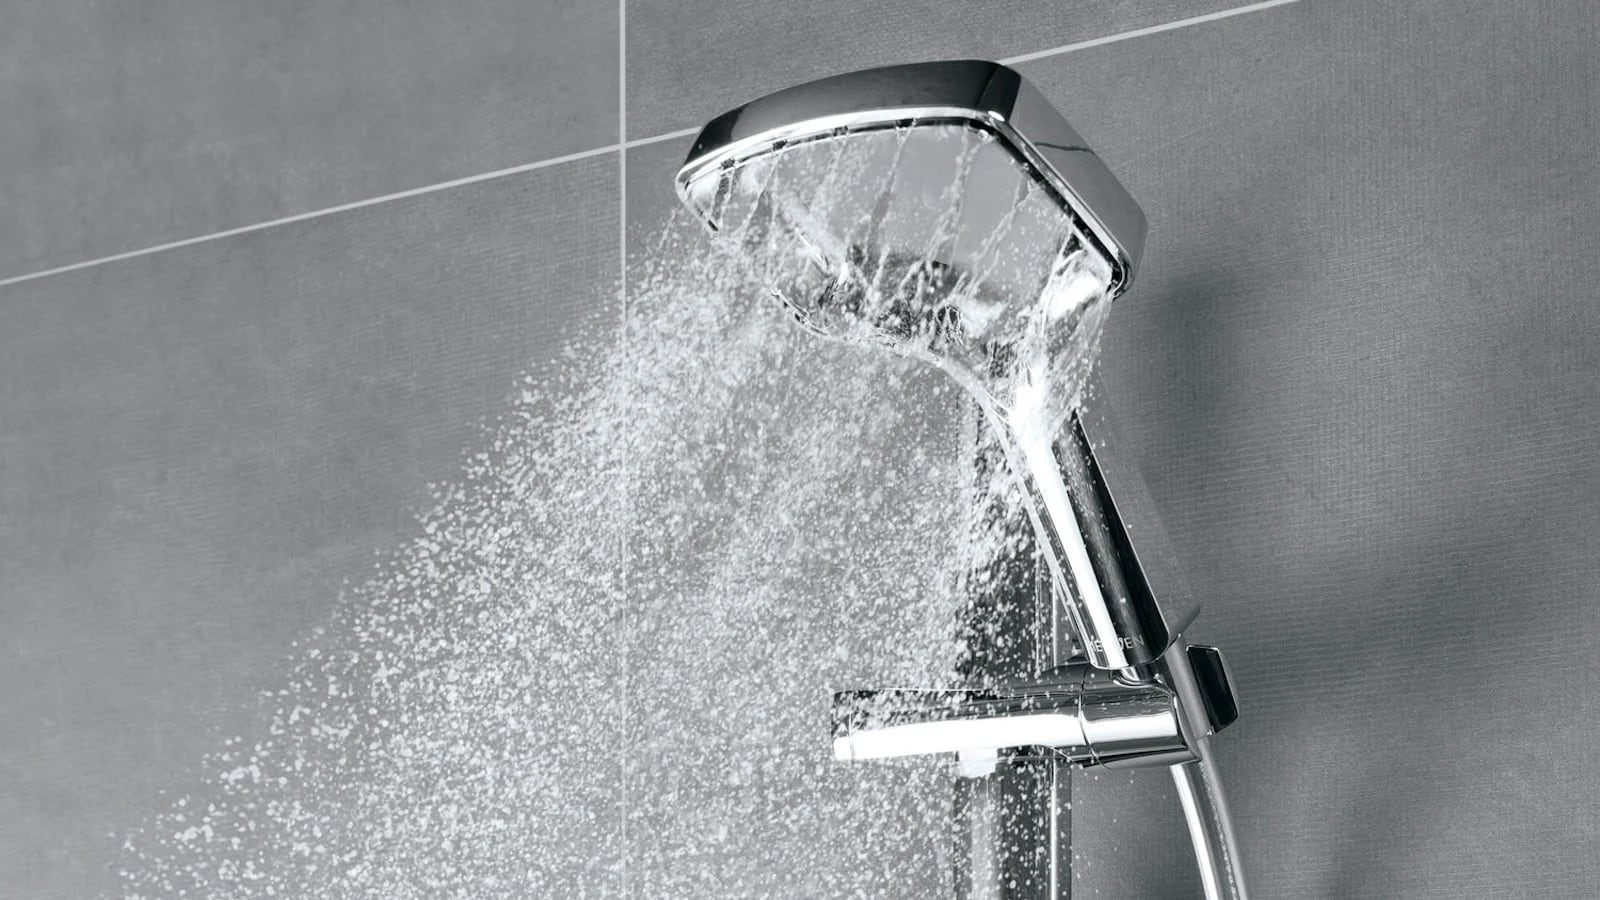 Methven Rua Handset Shower Accessory delivers a powerful water spray